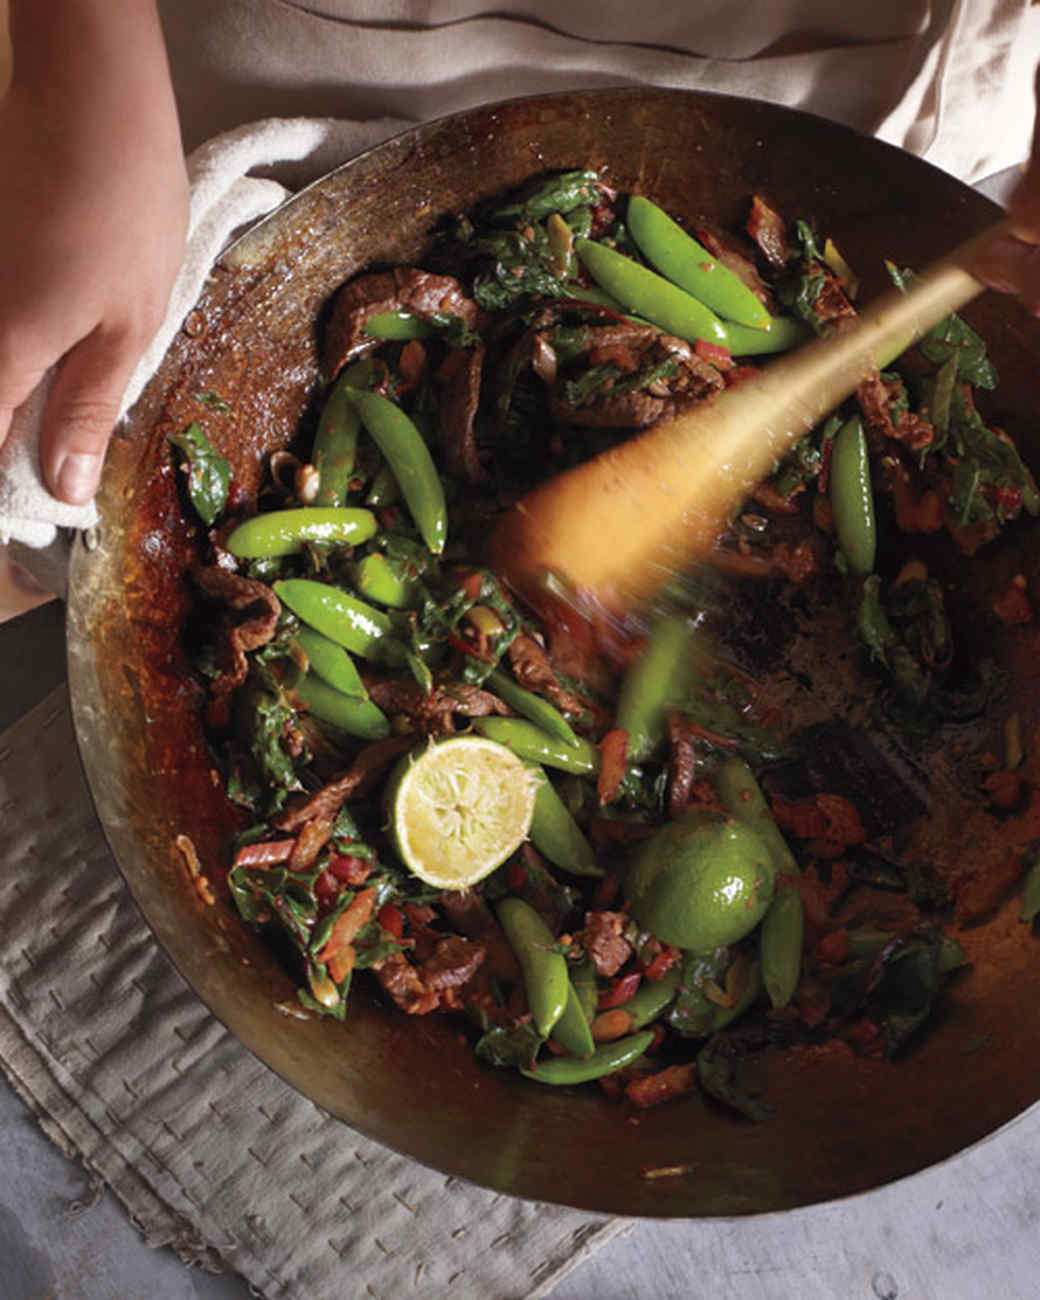 Swiss Chard, Snap Peas, and Beef Stir-Fry